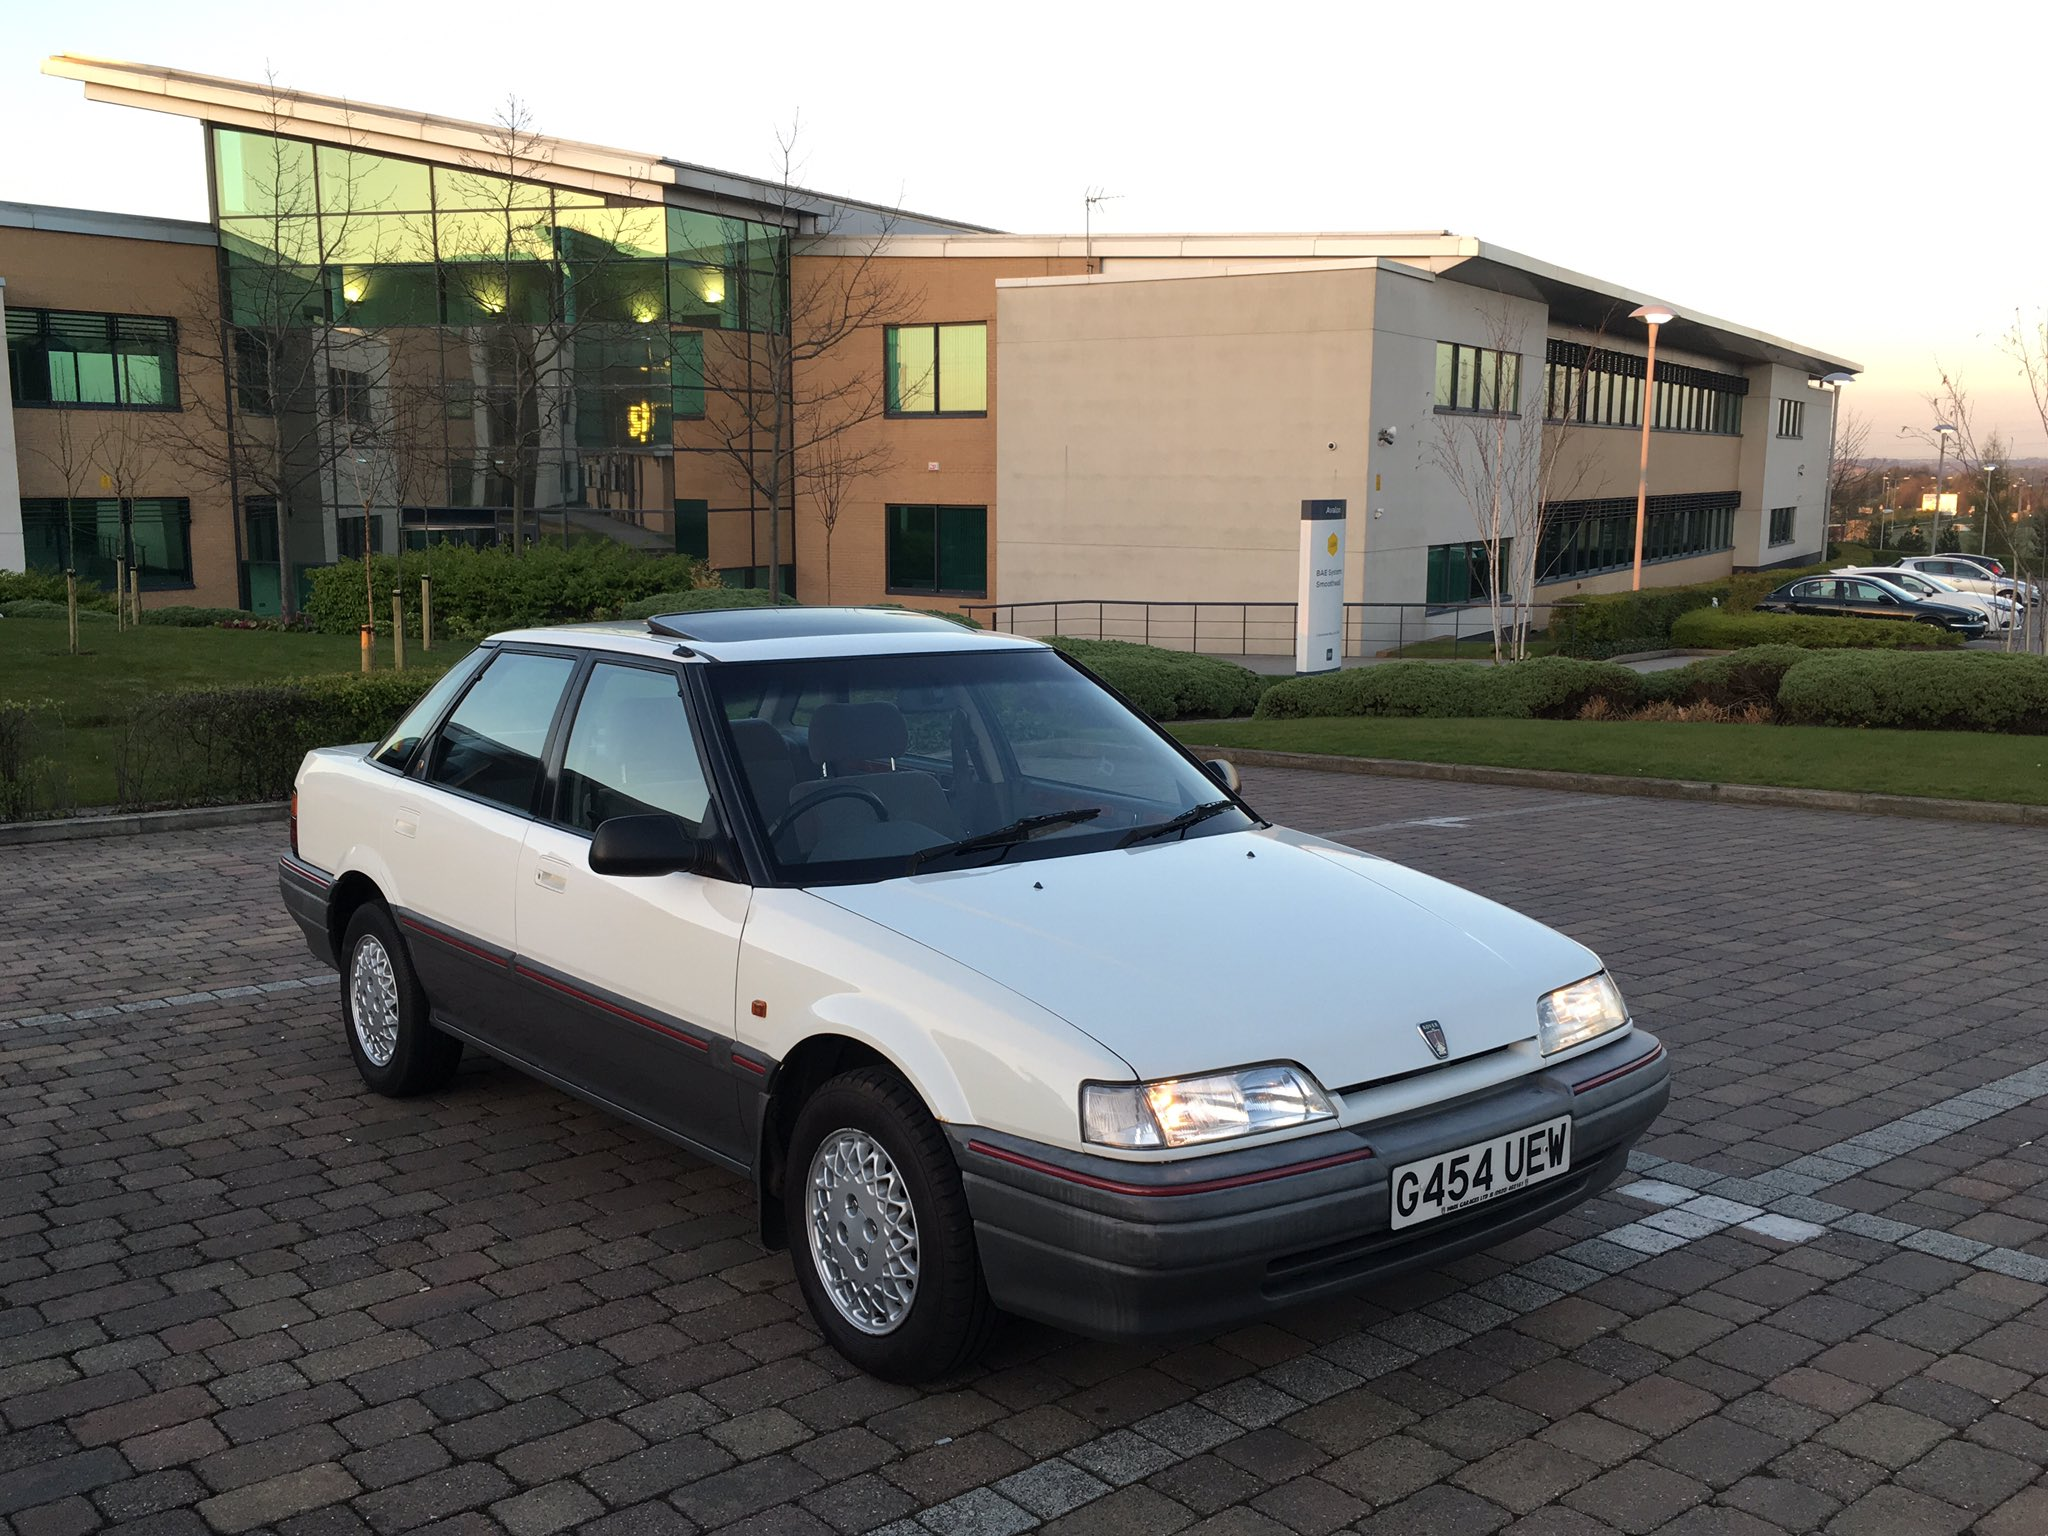 "Paul on Twitter: ""FS: Rover 416 GSi, 1990 G-reg, 29k, FSH, GTi lattice alloys, rare air con, everything works, excellent cond, £1,300 ono."